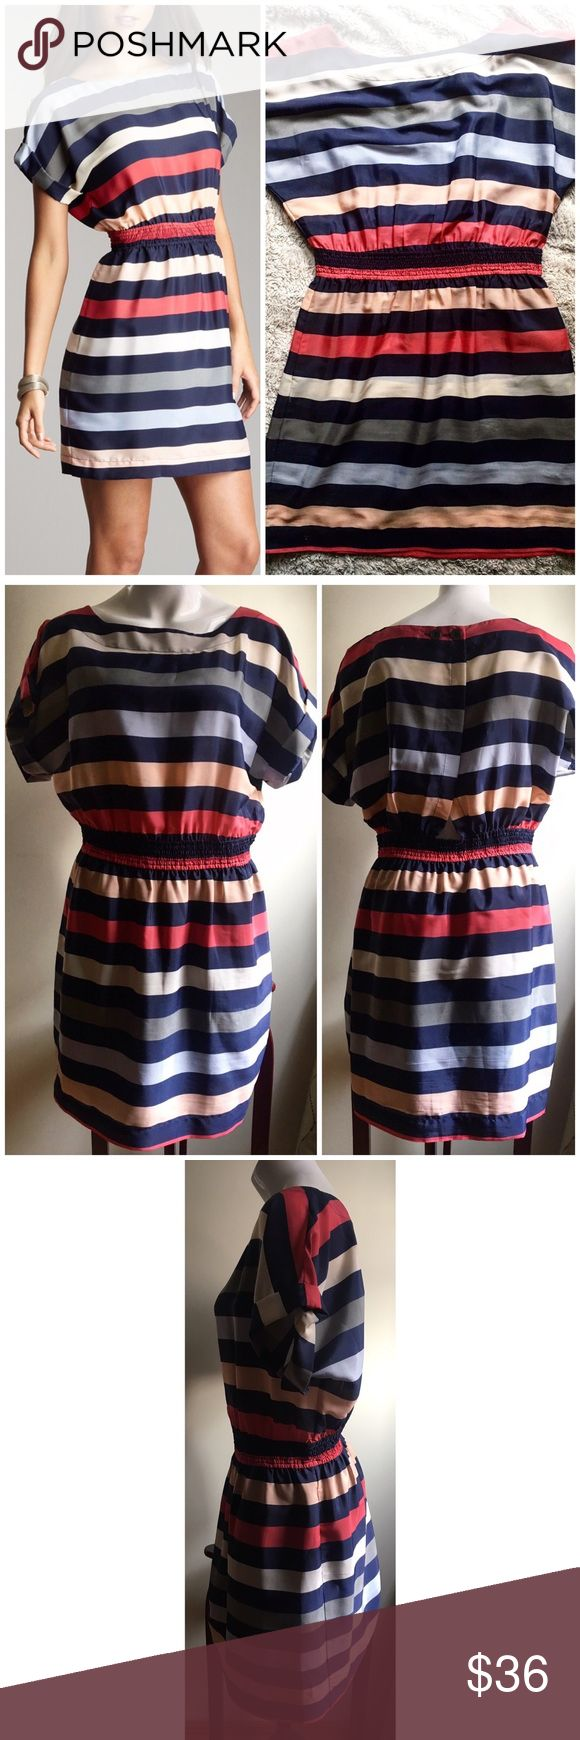 """BCBGeneration Sz Large Multi Striped Mini Dress Company:BCBGeneration Size:Large  Condition: preowned; worn once- great condition  Material: polyester  Notes: Has lining Stretch waistband Slight opening in back  2 Button closure in back, around nevk Cuffed short sleeve  Measurements laying down: Chest: 20"""" Center length (shoulder to hem): 37"""" Waist: 16"""" (stretches to ~21"""") BCBGeneration Dresses Mini"""